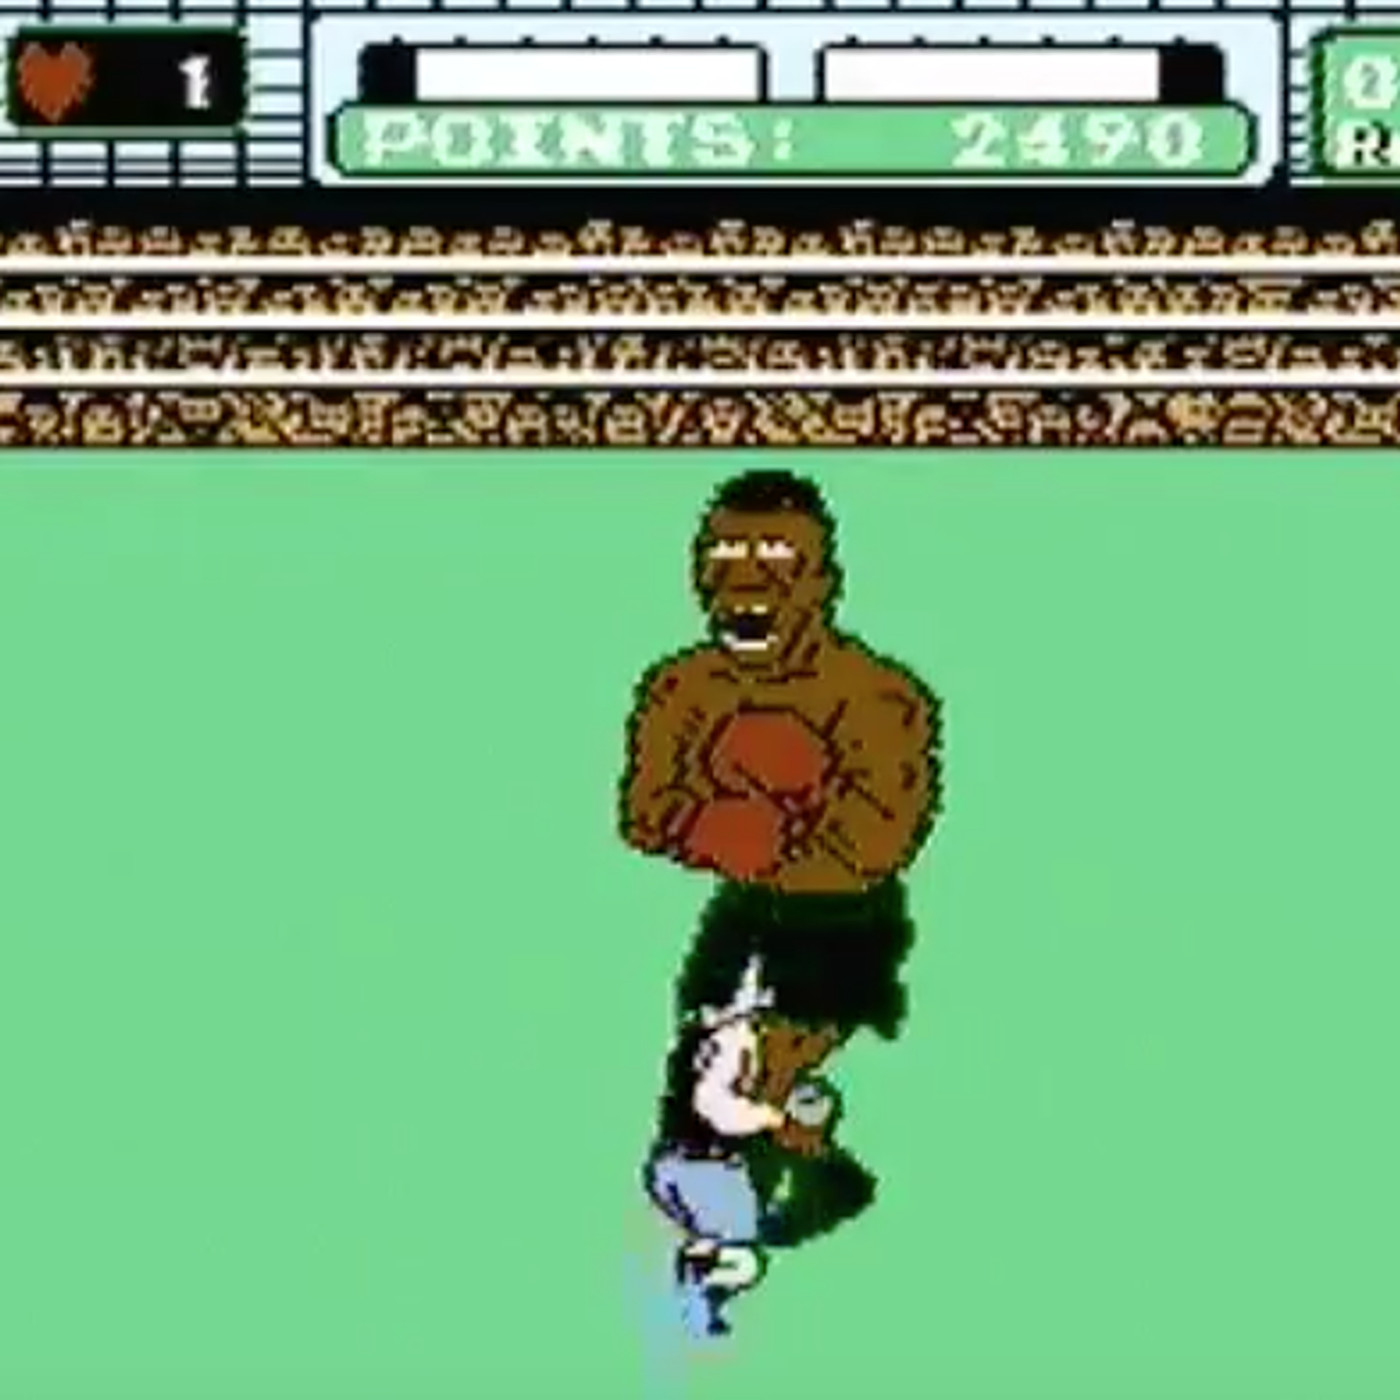 Punch-Out blindfolded: World record speedrun - Polygon